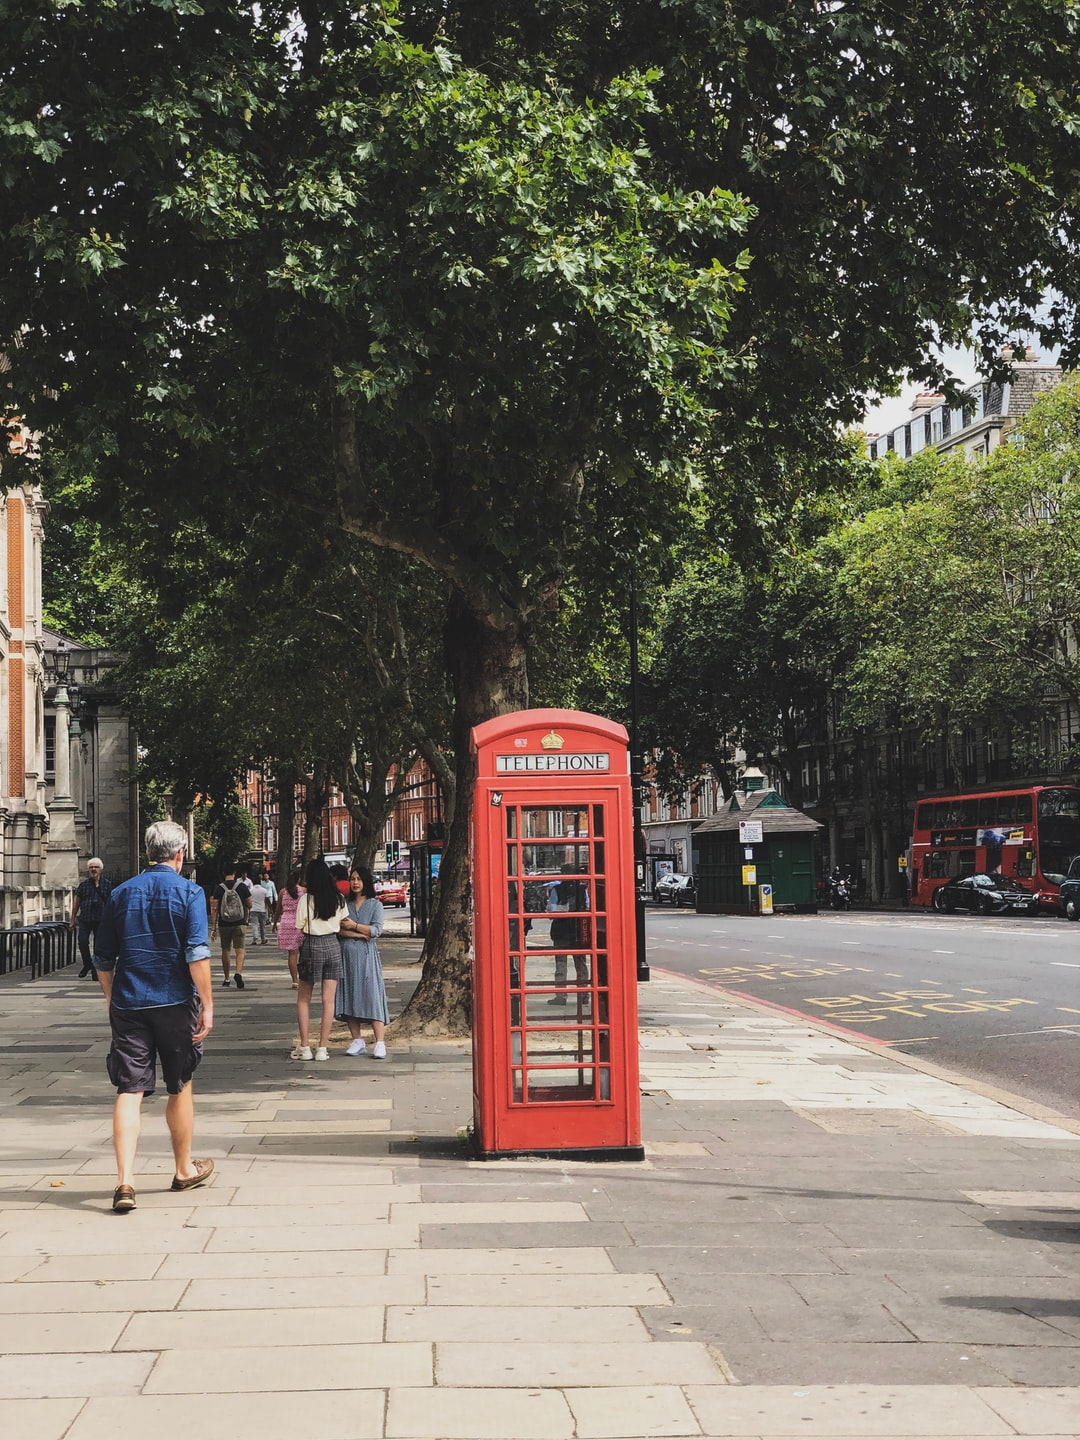 Phone booth in London